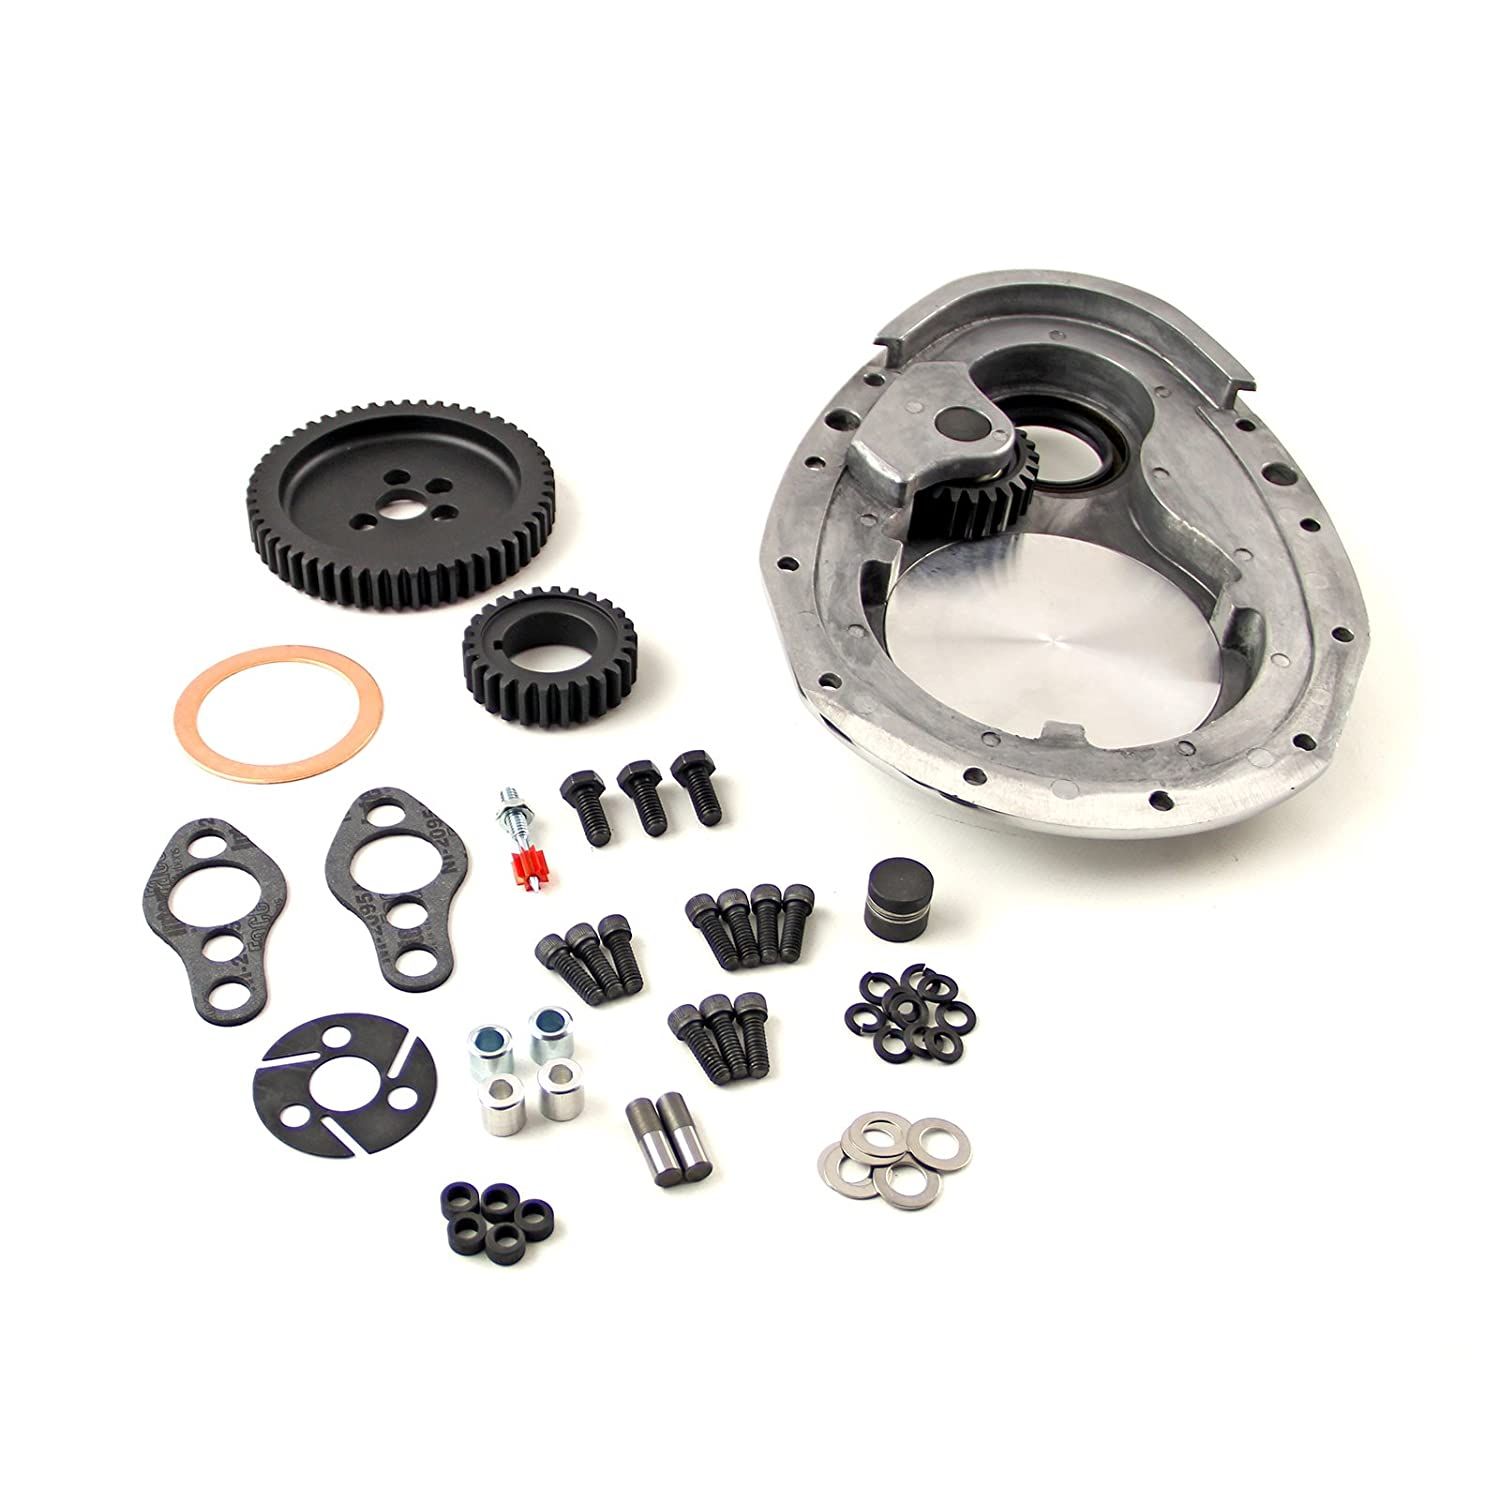 Procomp Electronics PCE267.1011 Chevy SBC 350 Single Idler Noisey Timing Gear Drive & Aluminum Timing Cover Set Single Idler